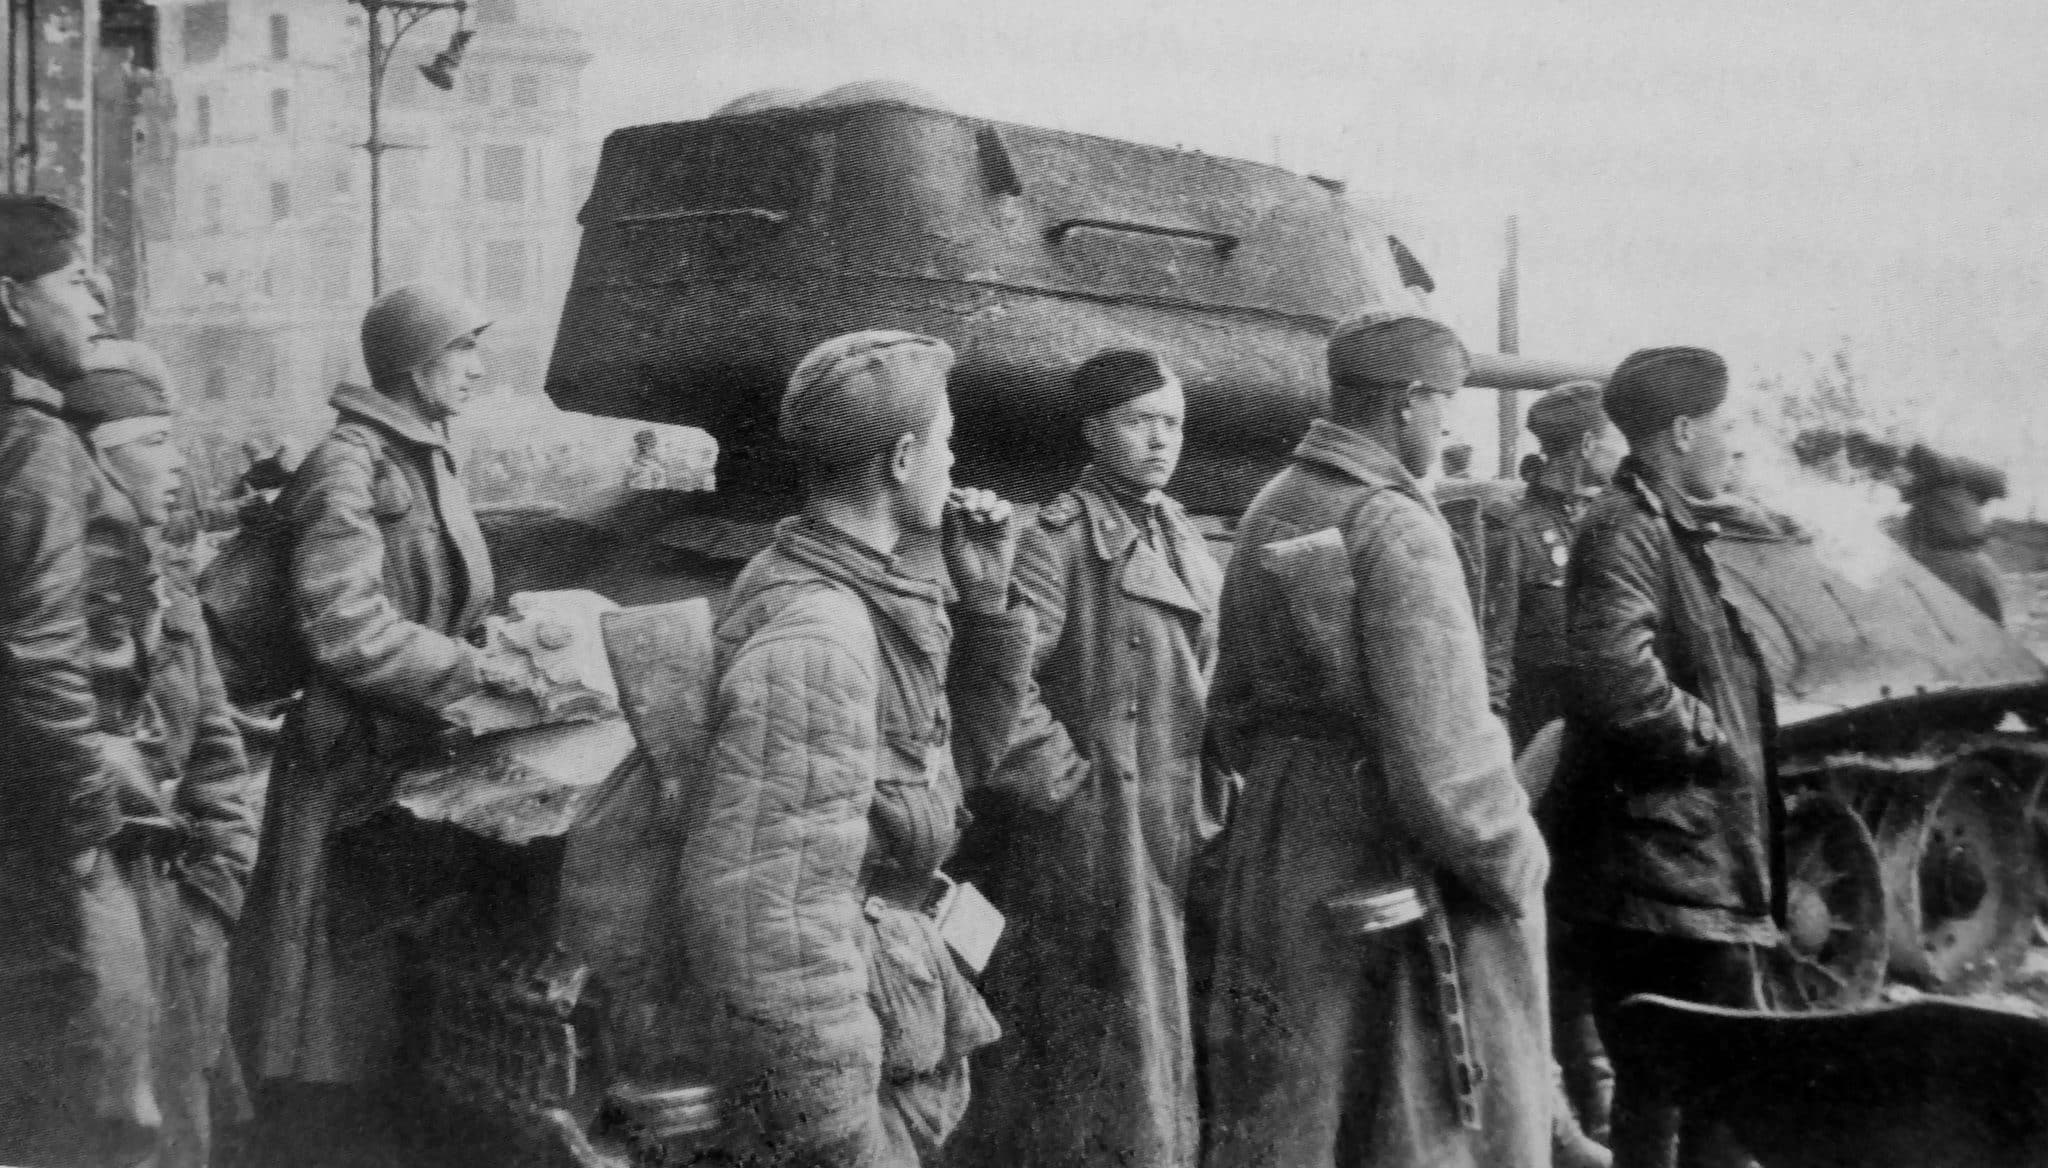 Red Army soldiers and officers at the wrecked T-34-85 tank in front of the Moltkebrücke bridge in Berlin